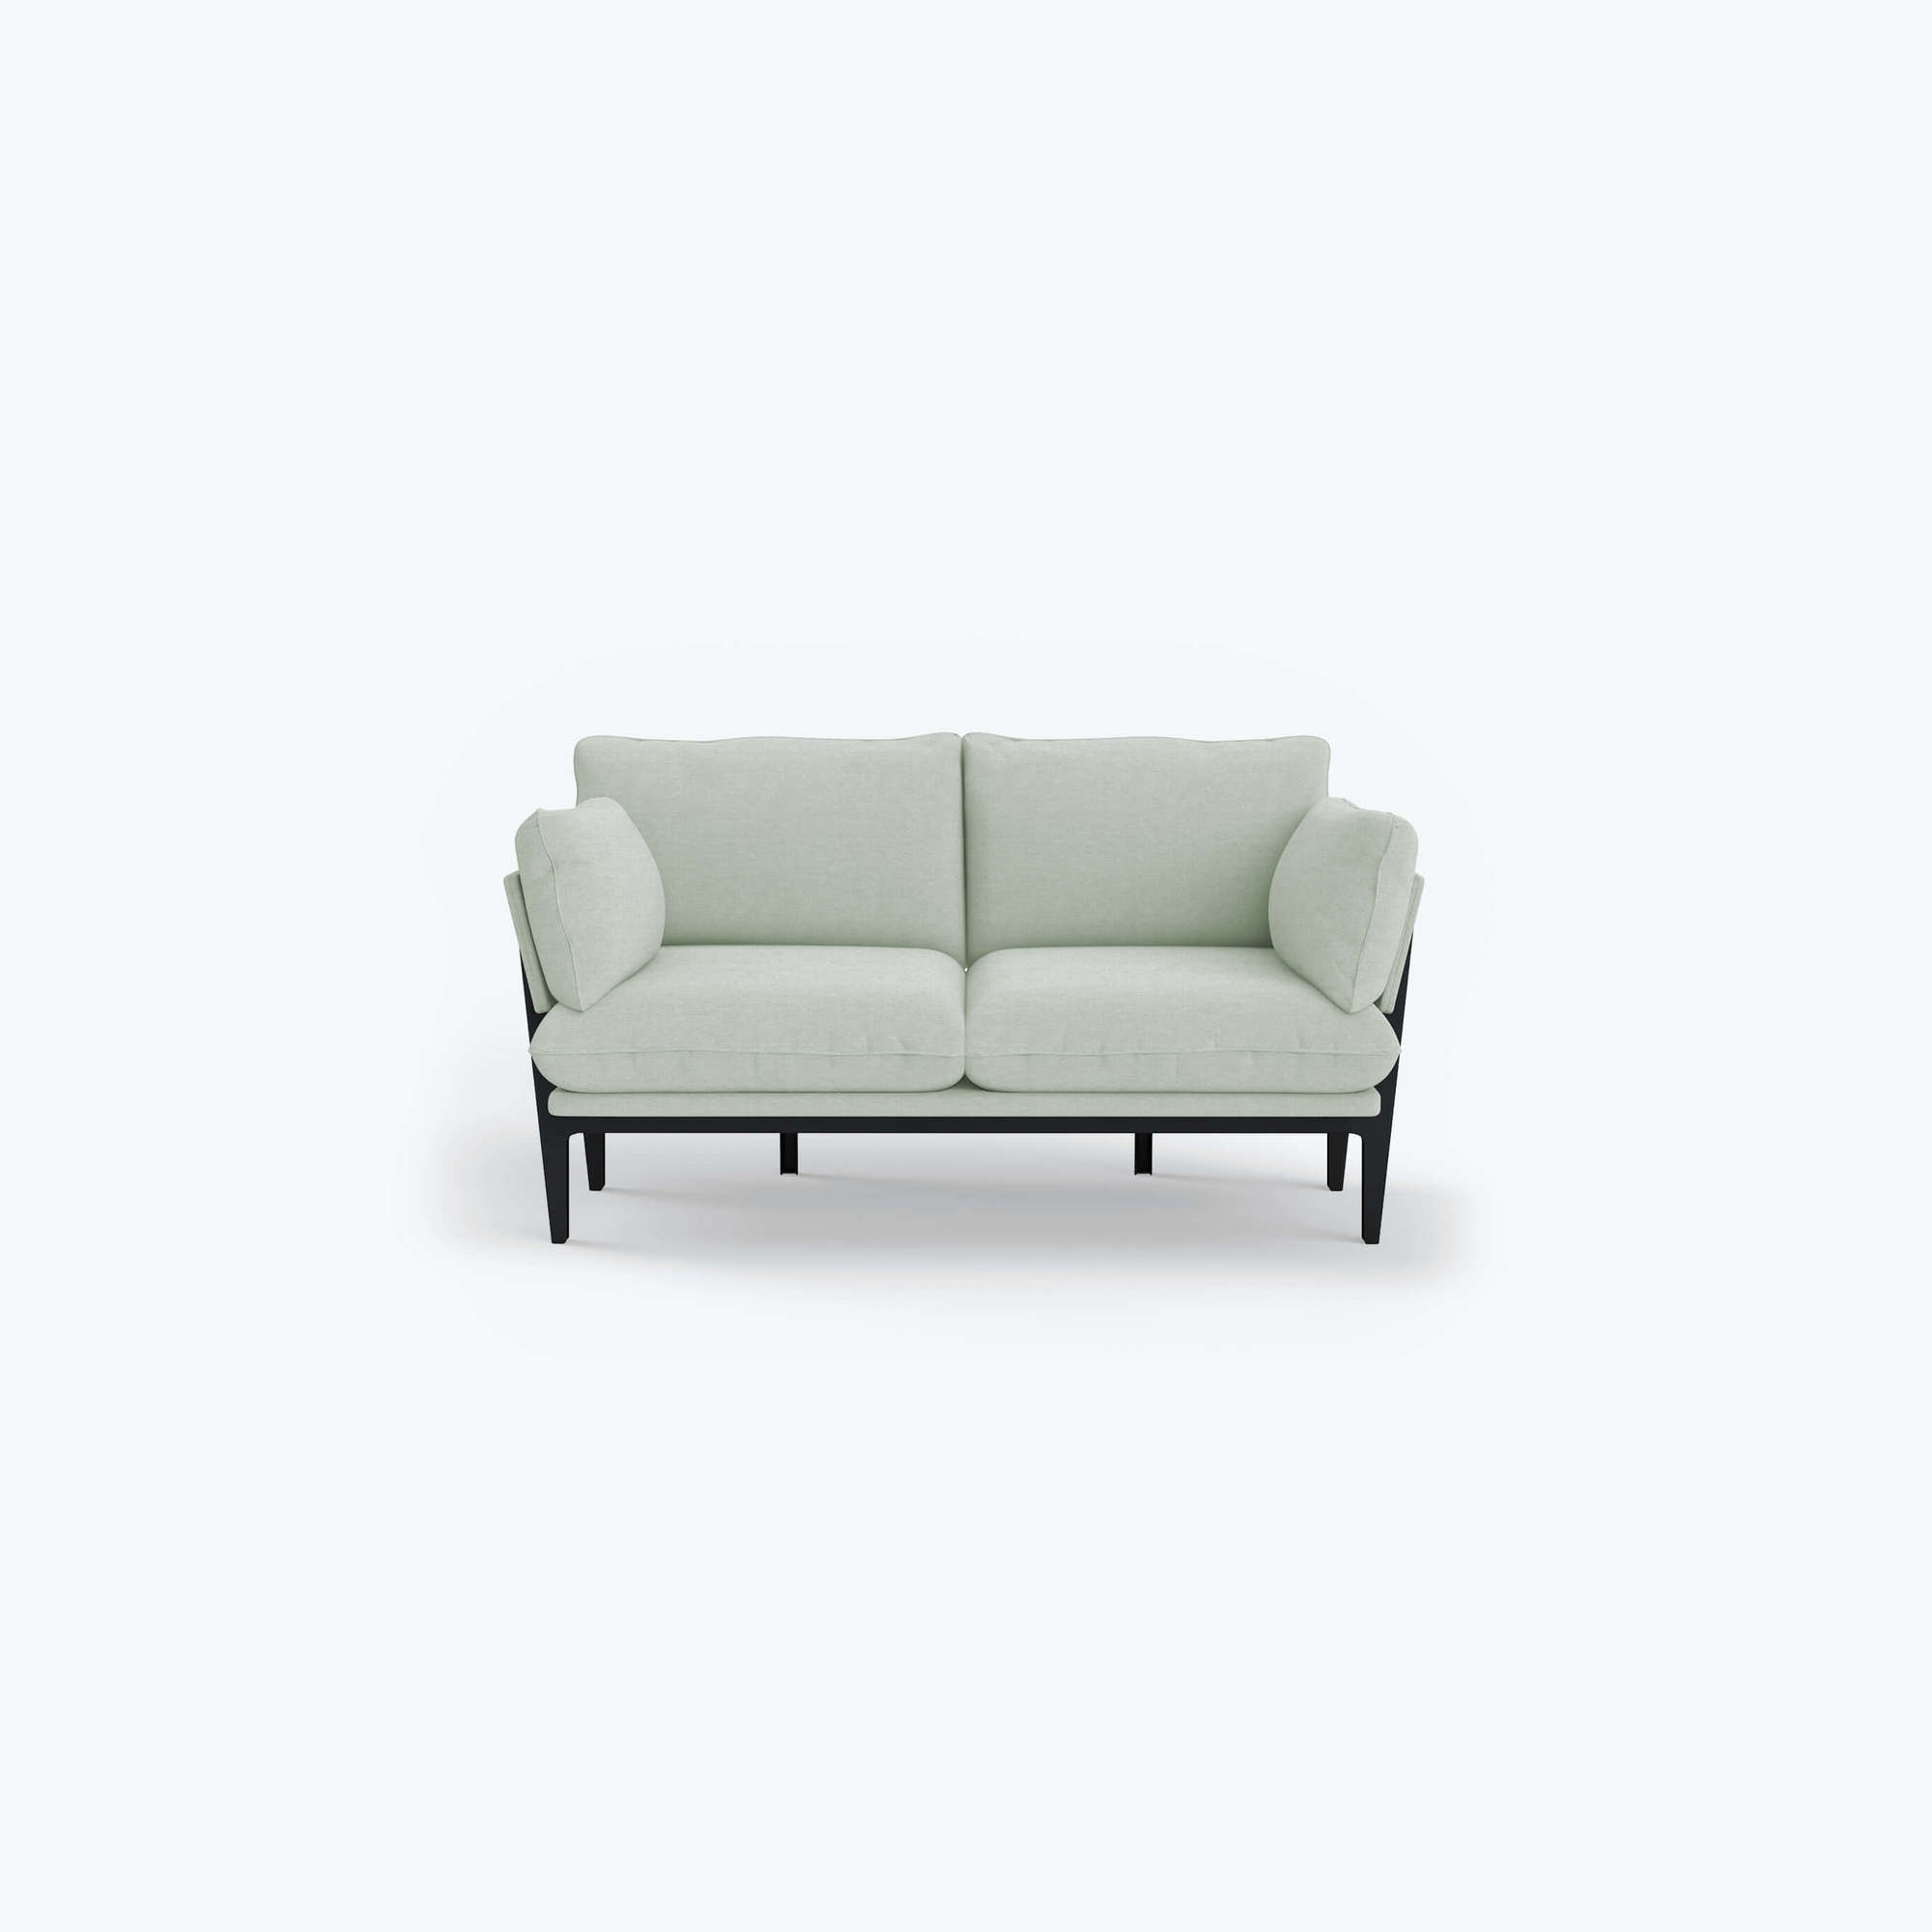 Image of: 10 Best Loveseats Of 2020 Top 2 Seat Small Sofas Apartment Therapy